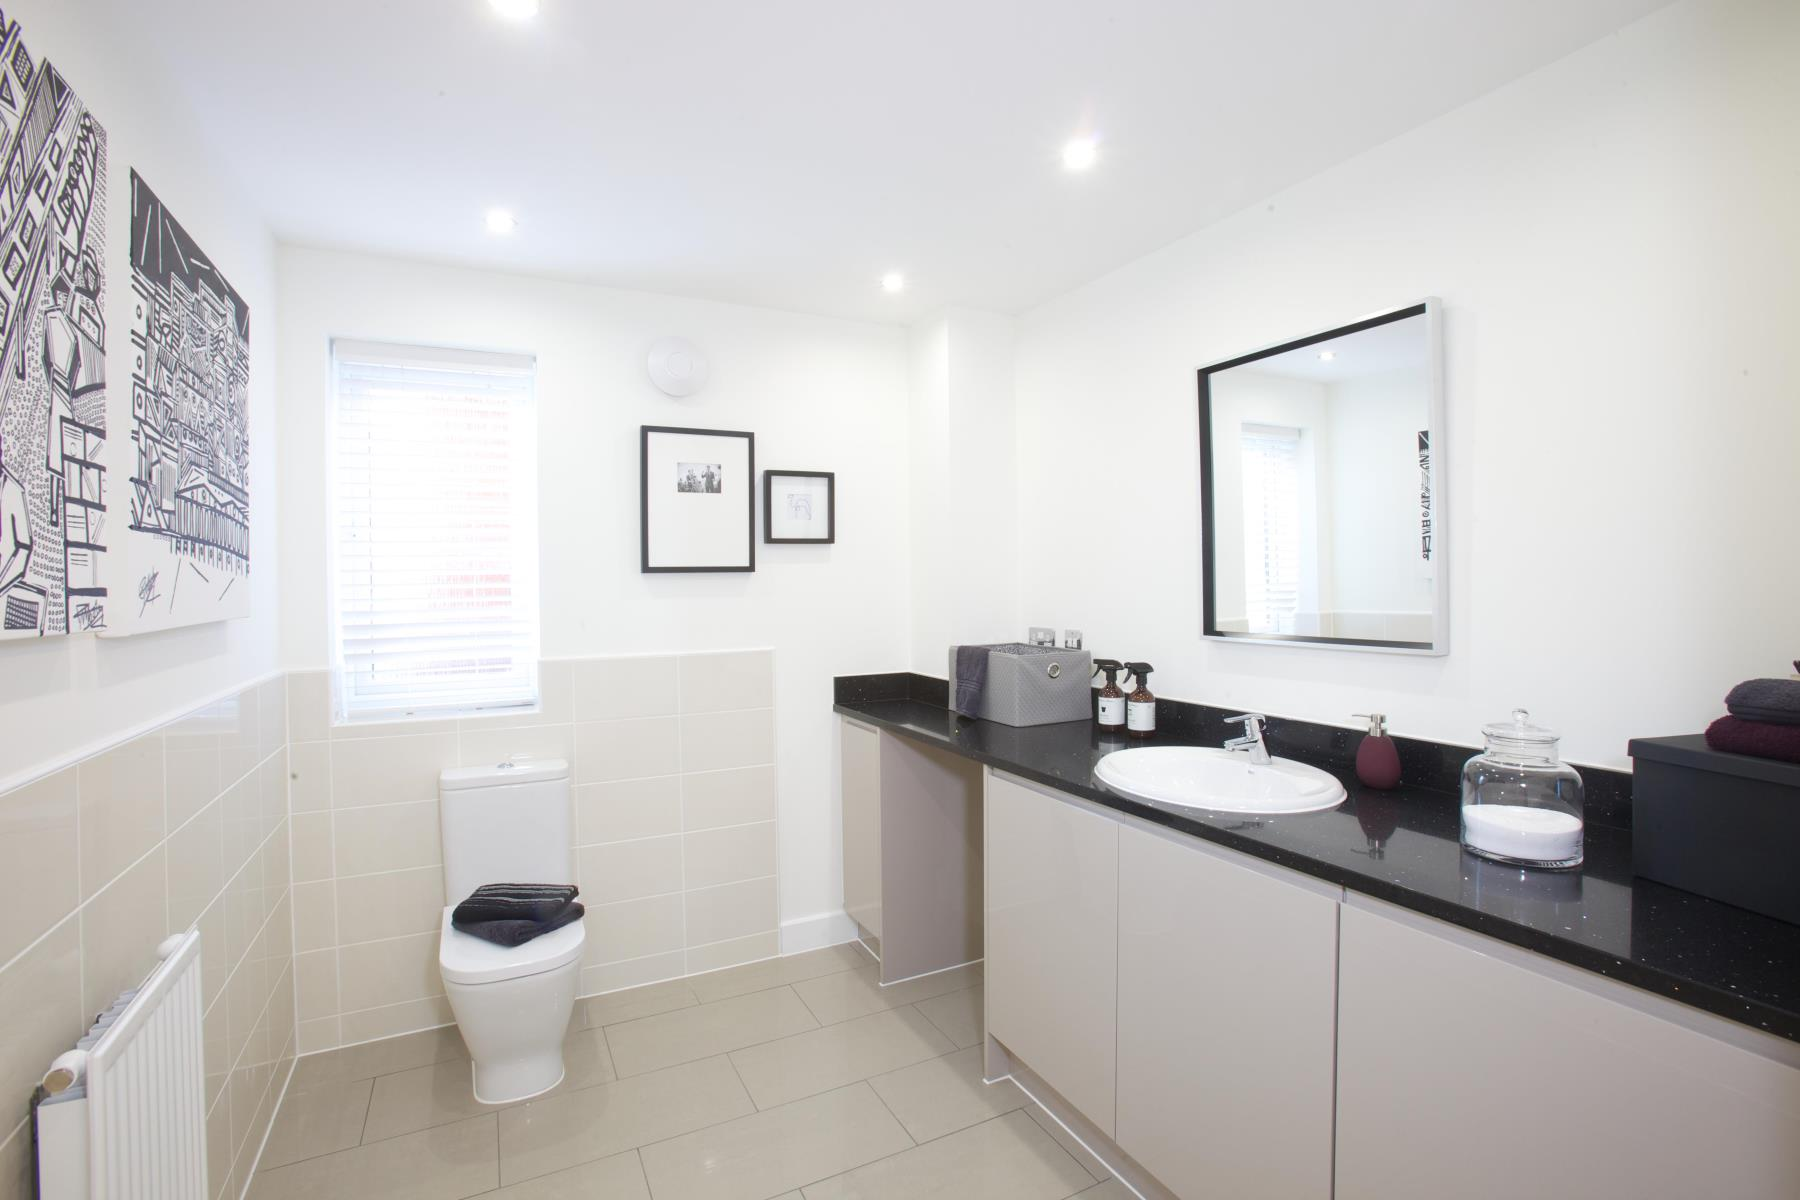 Typical Taylor Wimpey home - Cloakroom/Utility